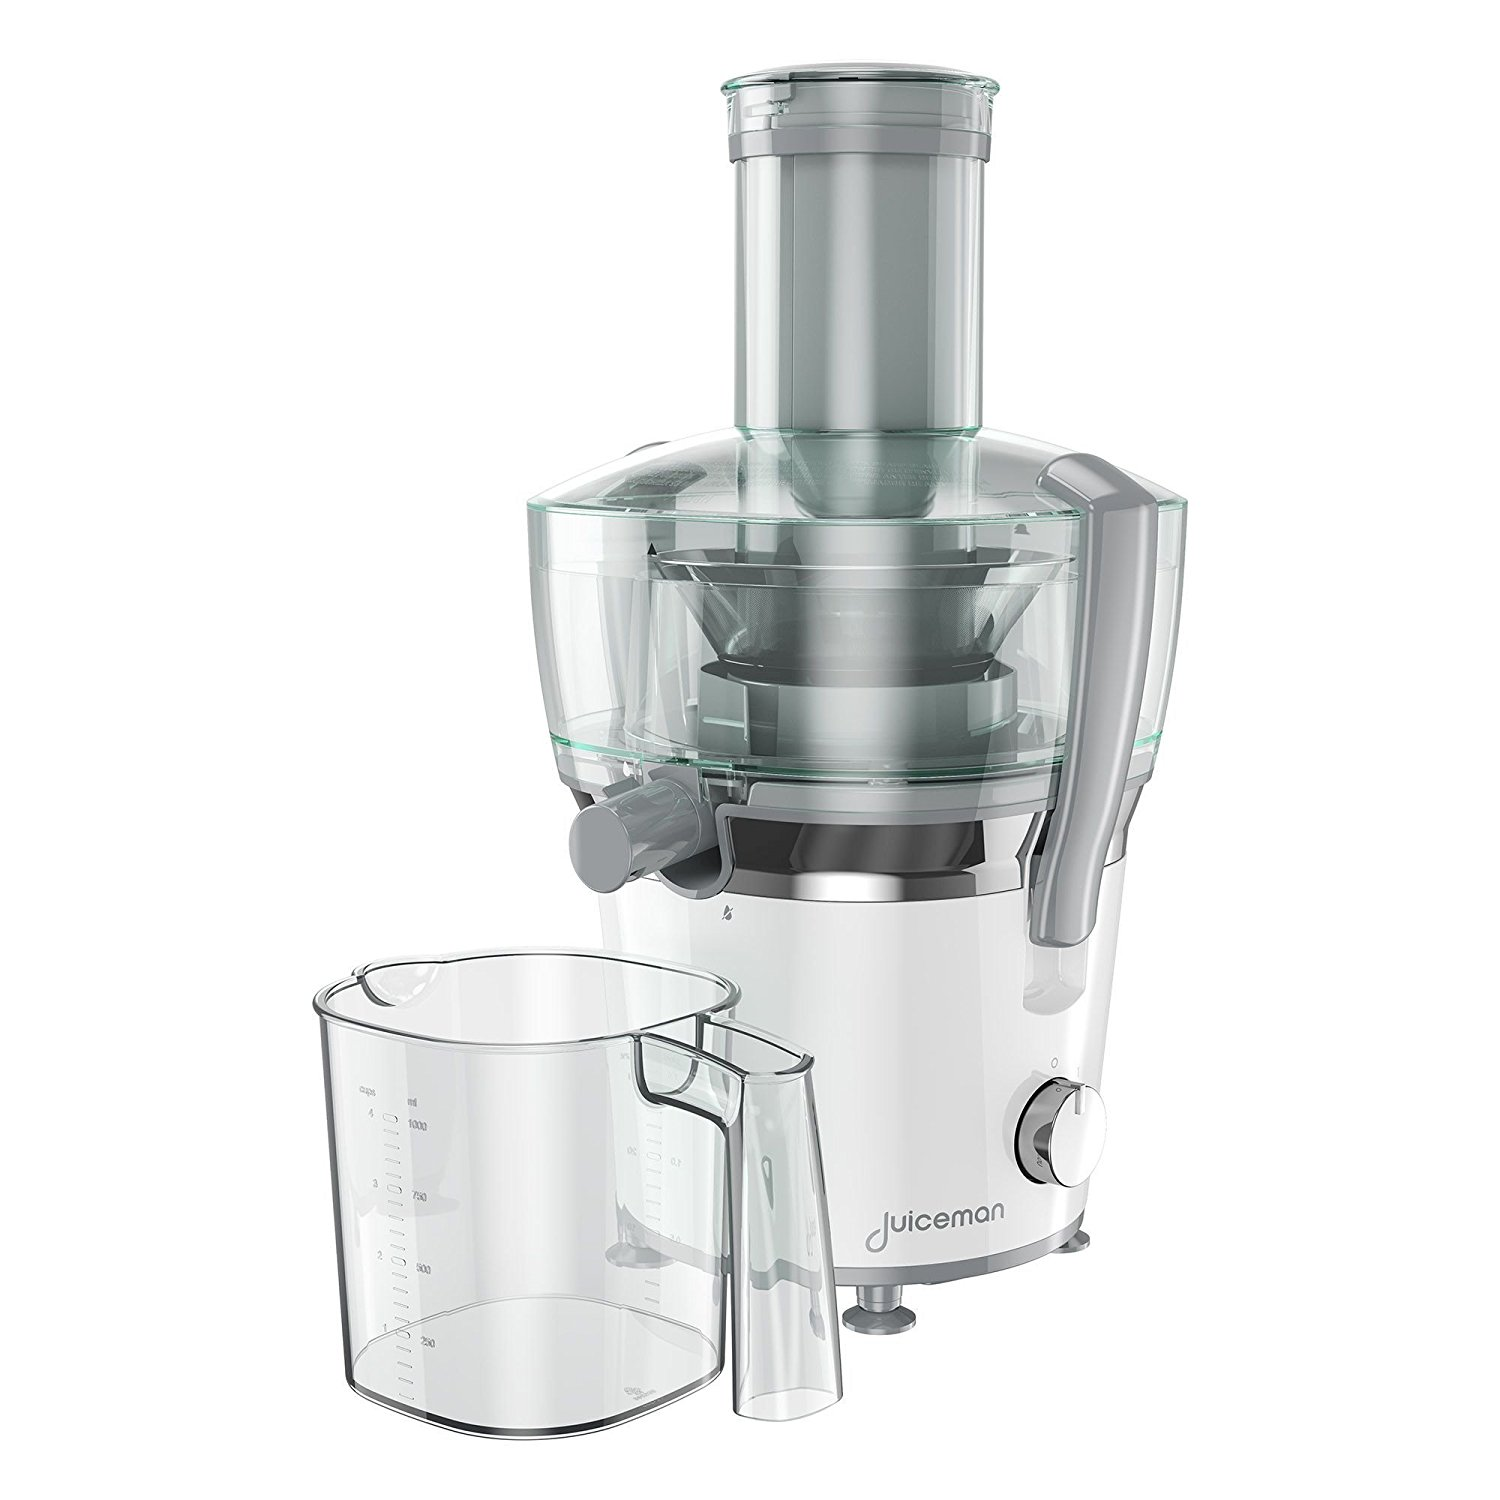 Juiceman JM850 Power Plus 2 Speed Compact Juicer & Citrus Juicer with 28oz. Removable Pulp Container & 32oz. Juice Pitcher